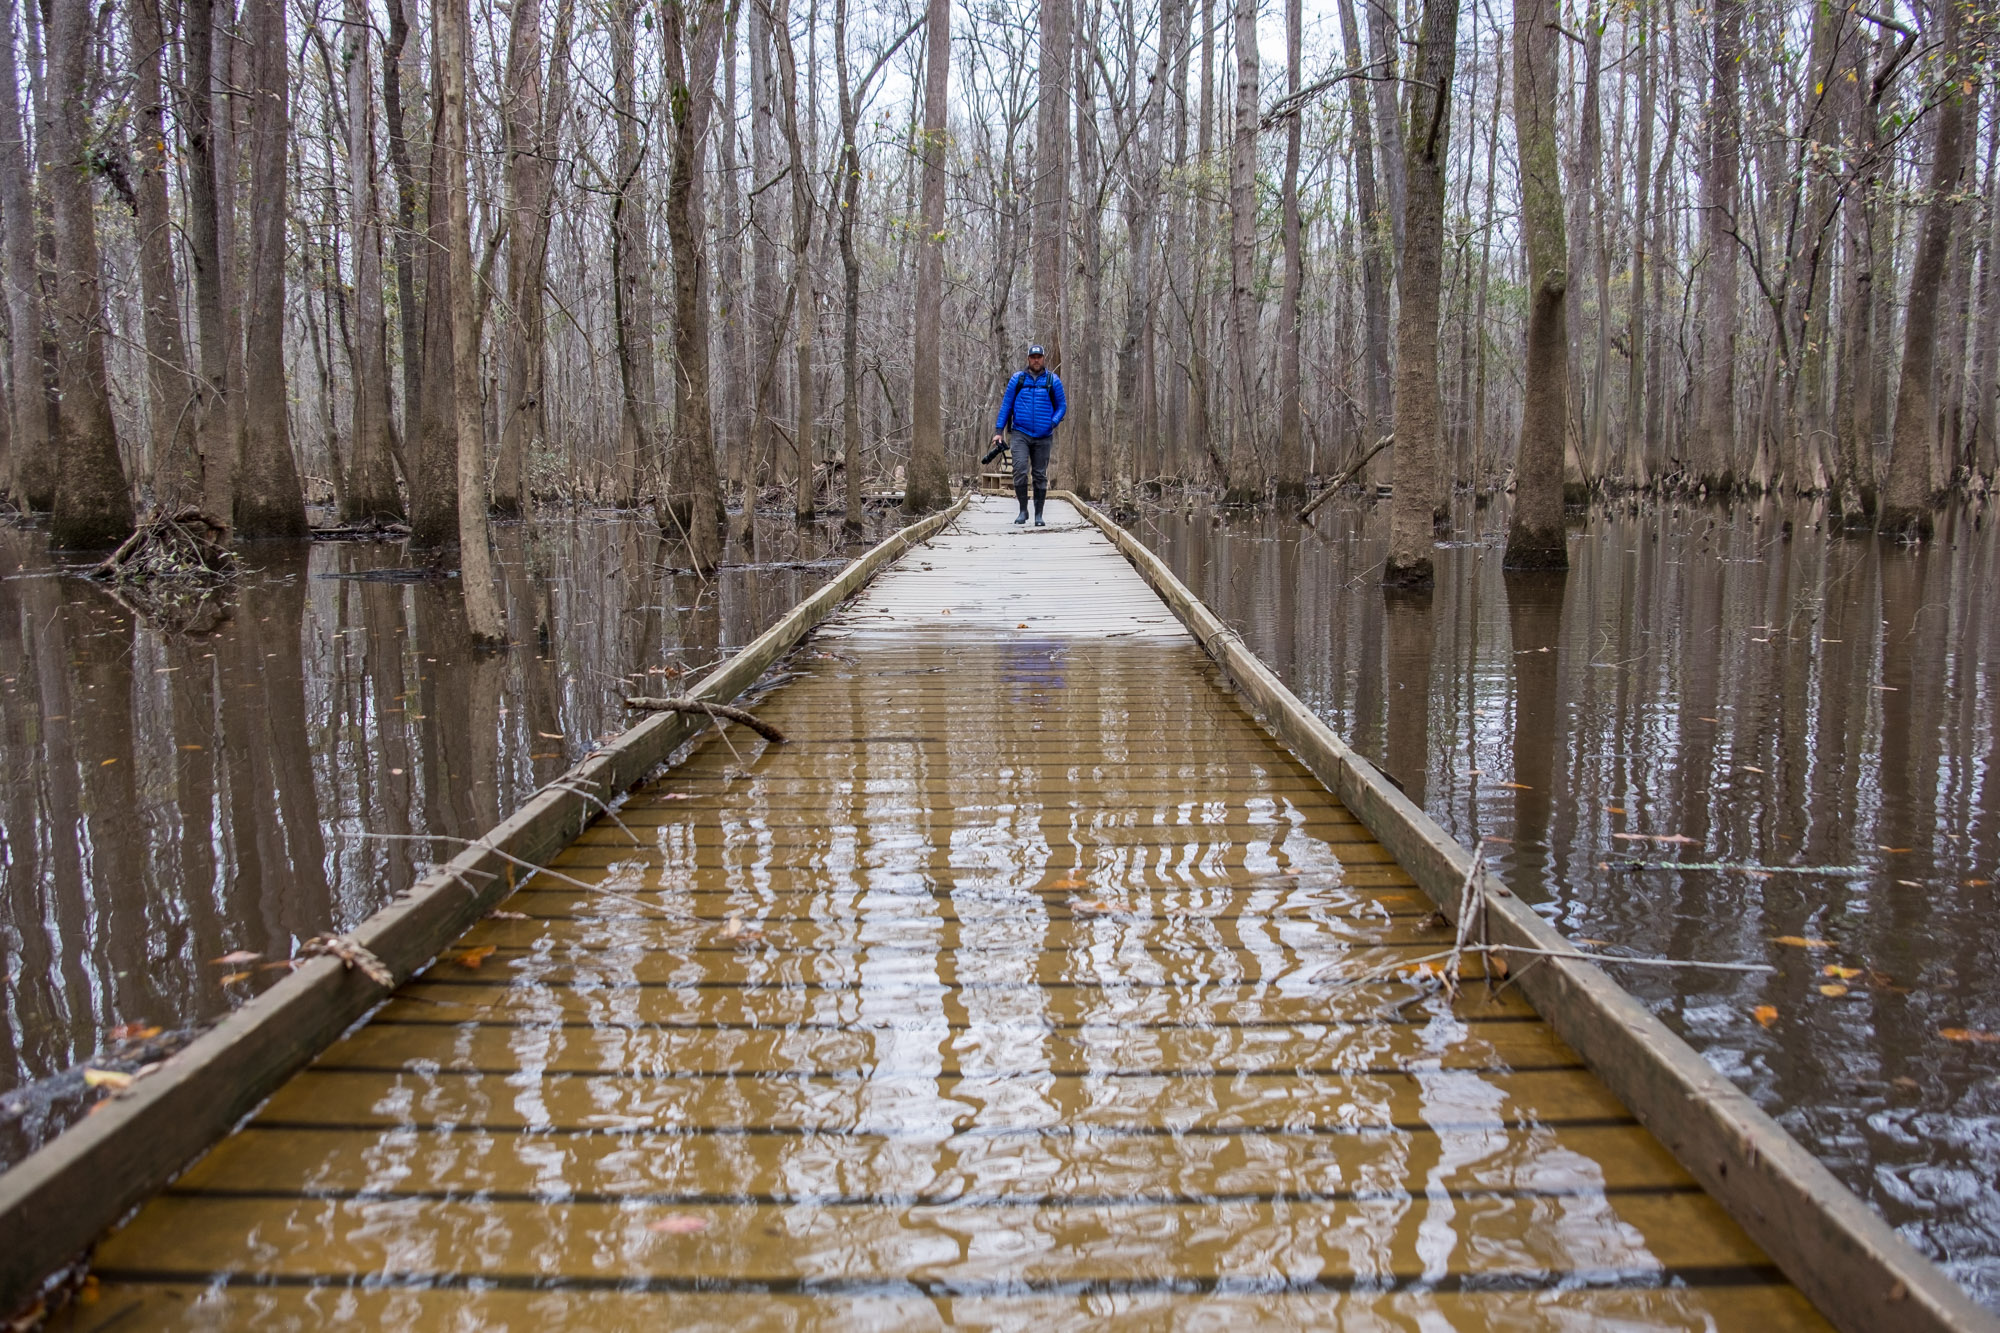 The boardwalk was about half flooded, but we had good wading boots to continue on.